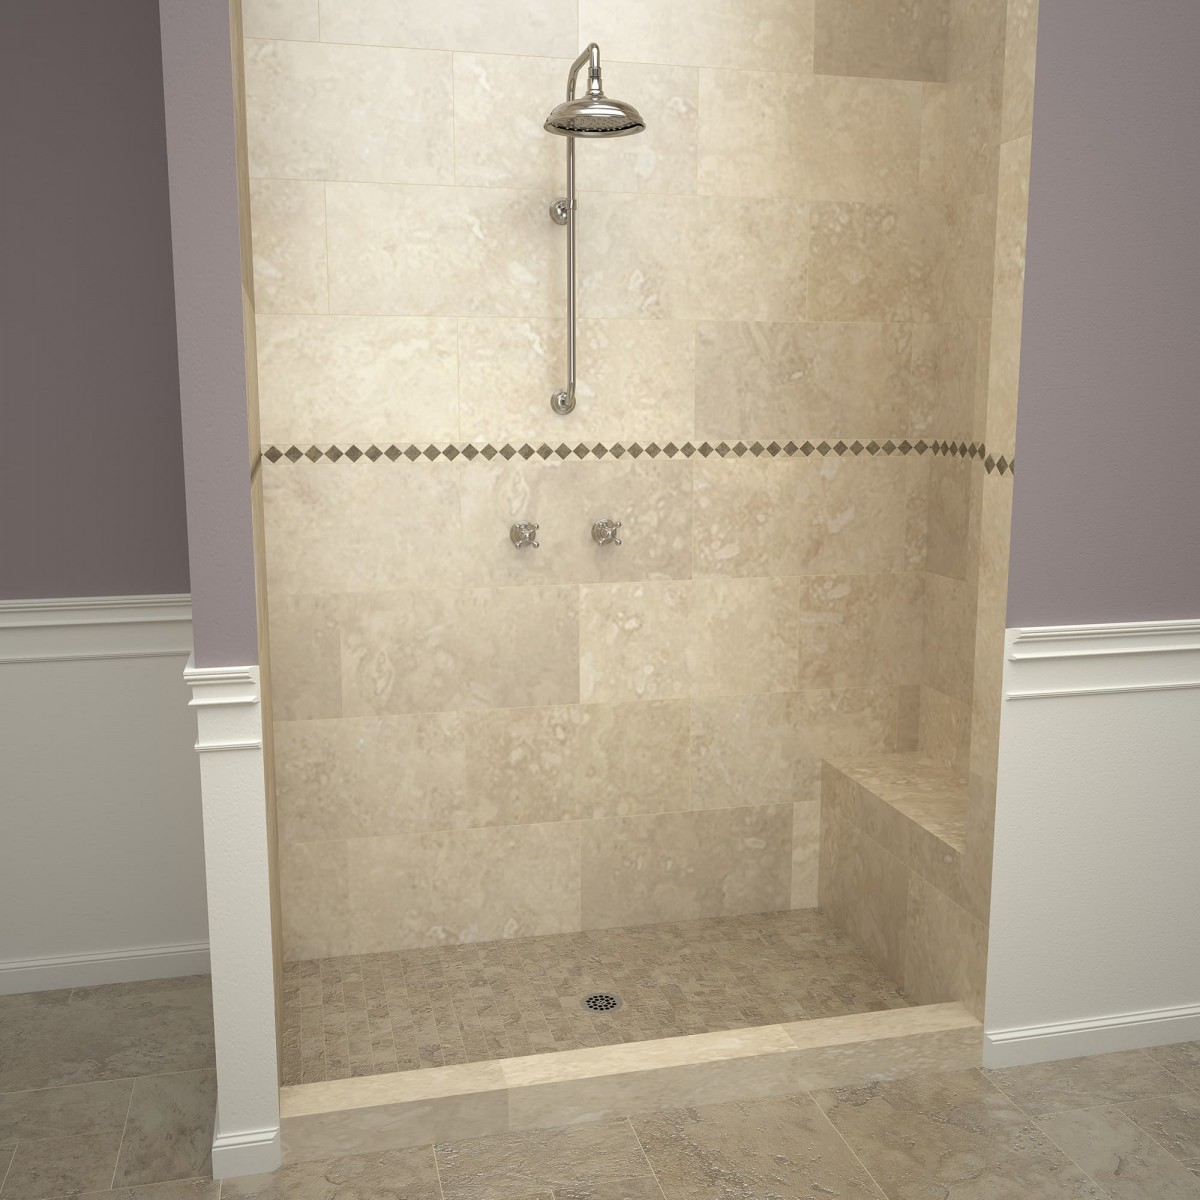 Redi Base Shower Pan And Bench 48 X 72 Center Drain Single Curb